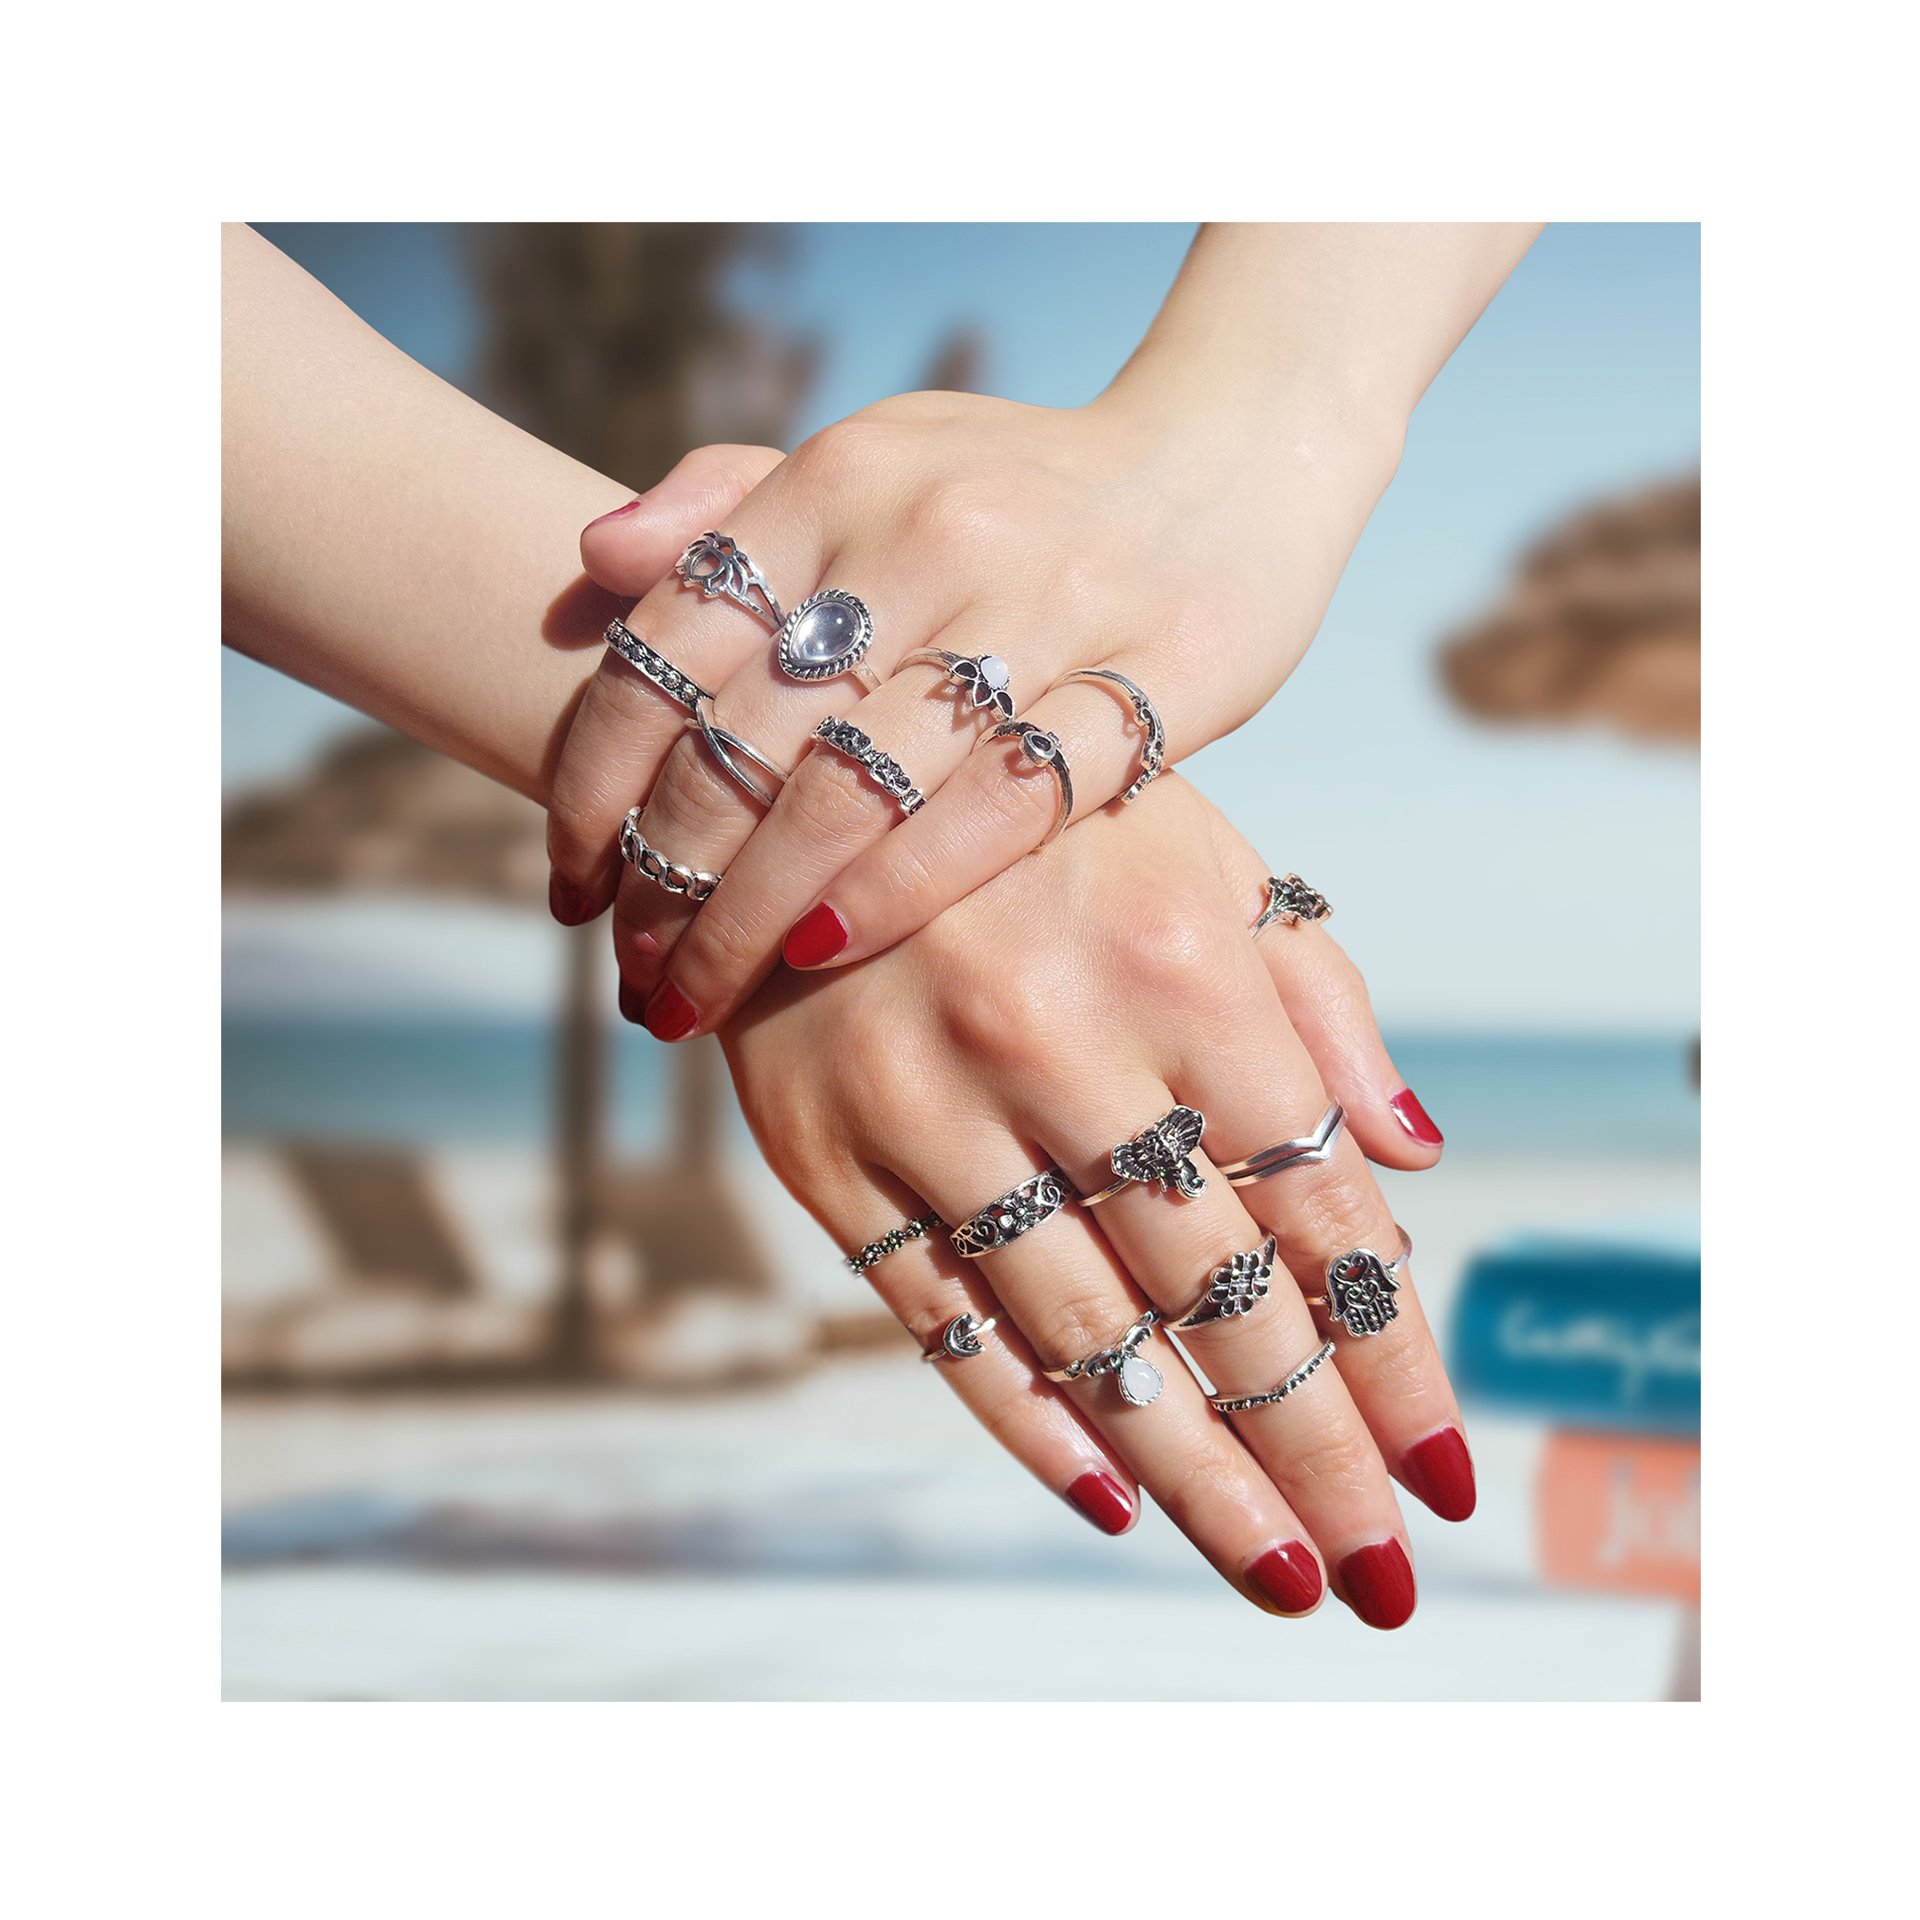 ZEALMER Boho Rings Silver Elephant Fatima Lotus Crown Rhinestone Joint Knuckle Nail Midi Ring Set For Women